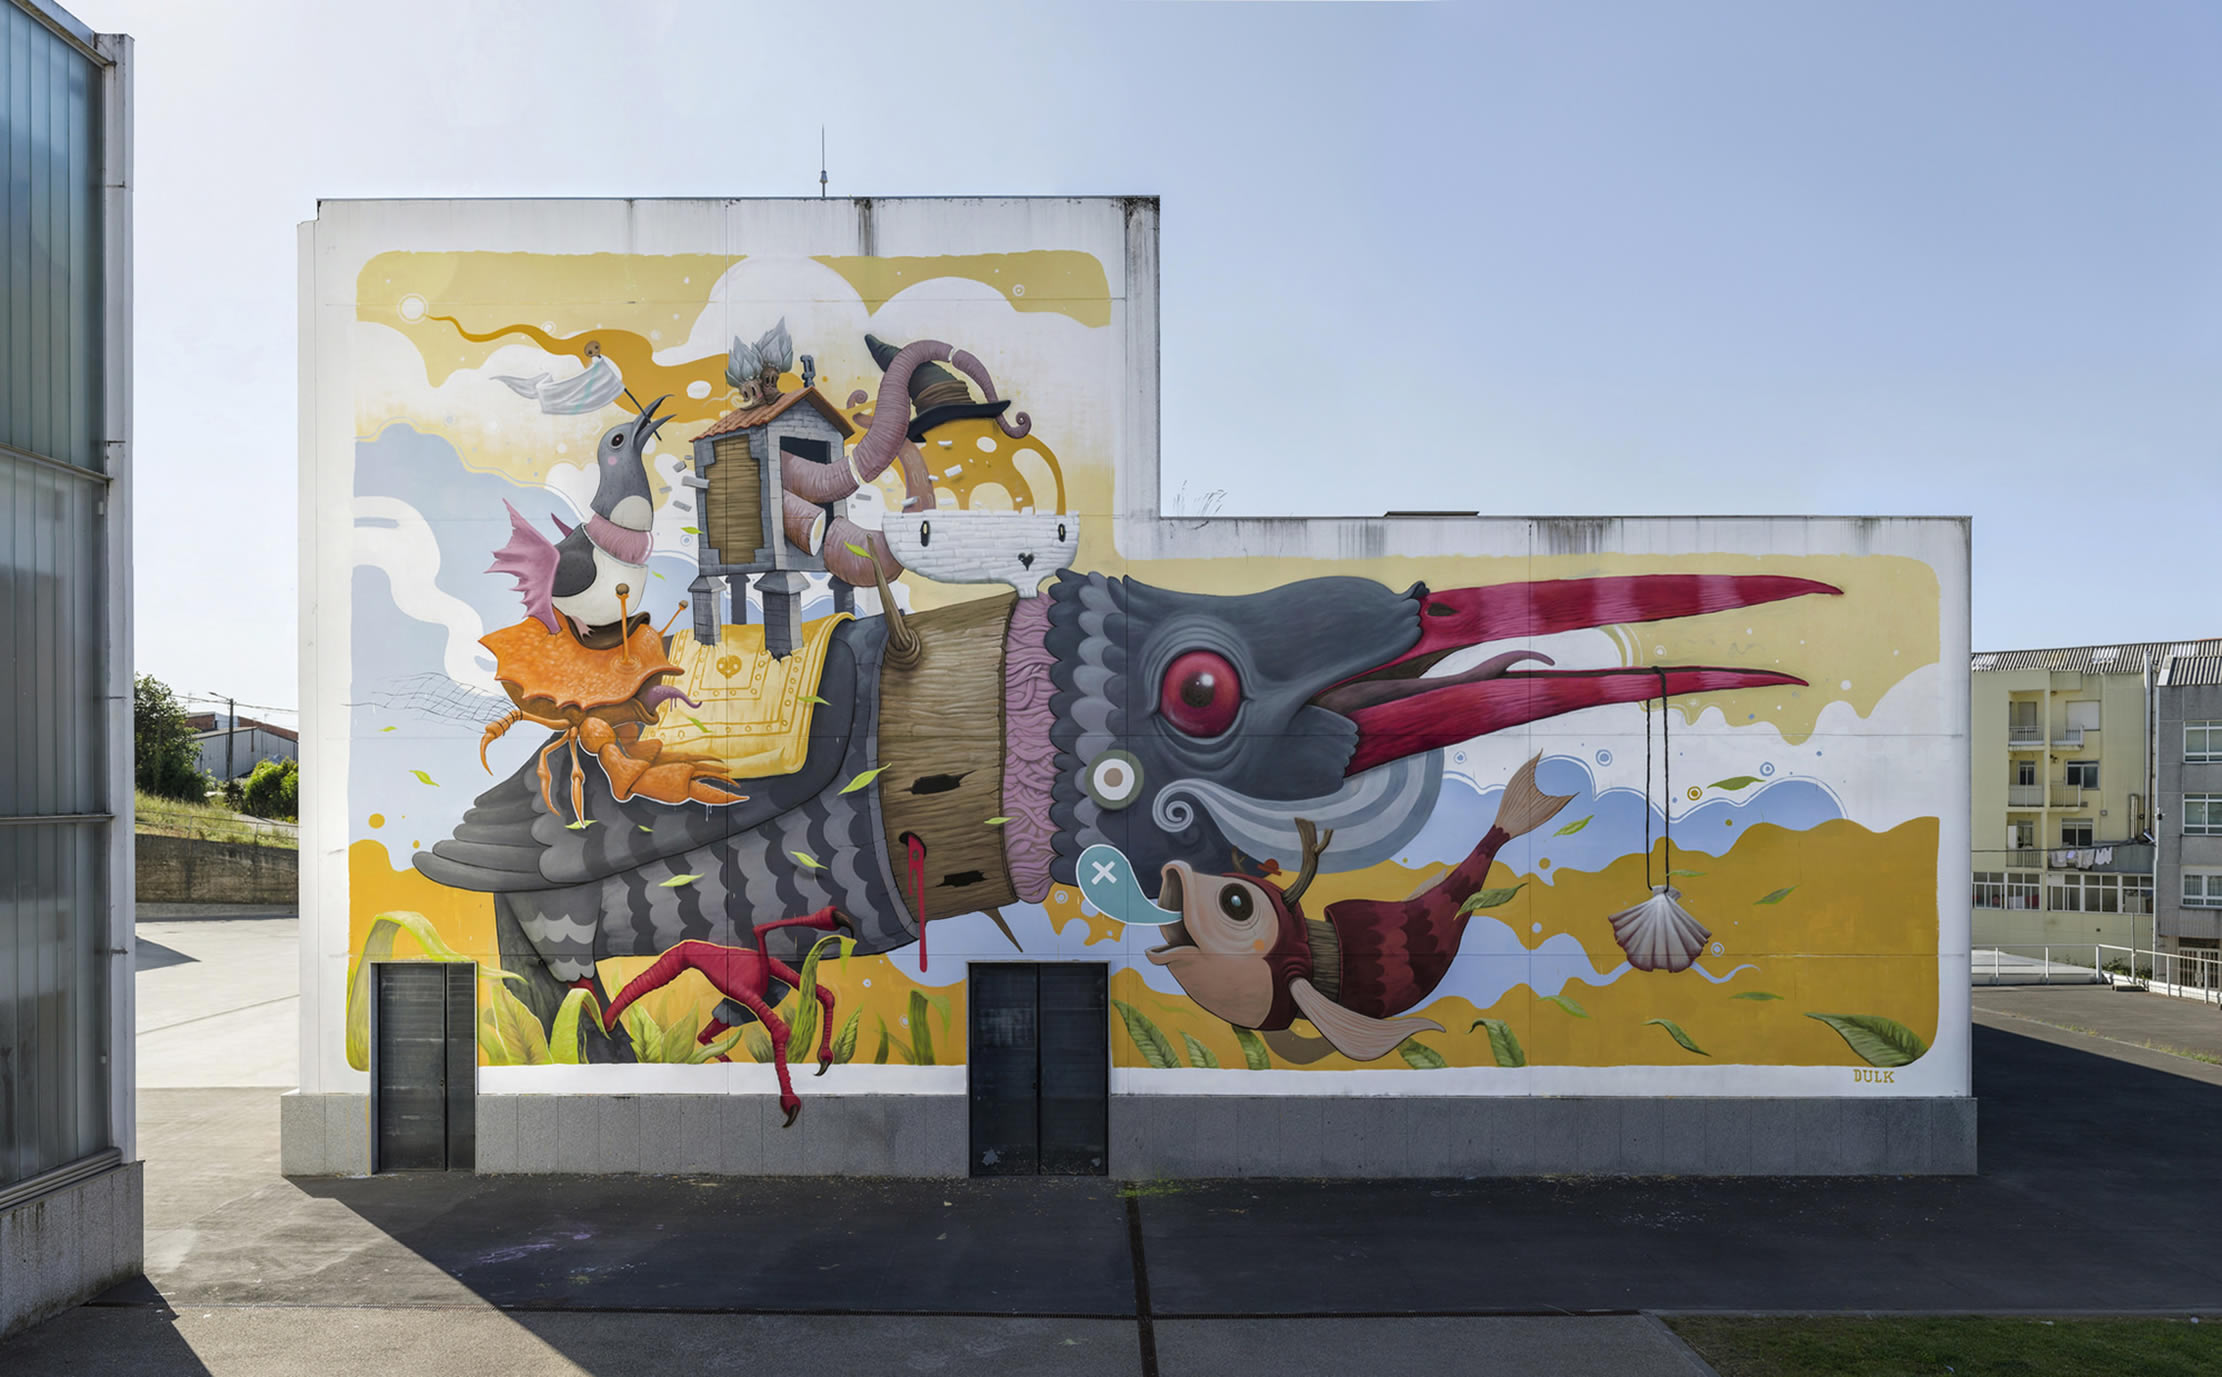 GIF Artist A. L. Crego Makes Graffiti Pieces Come to Life